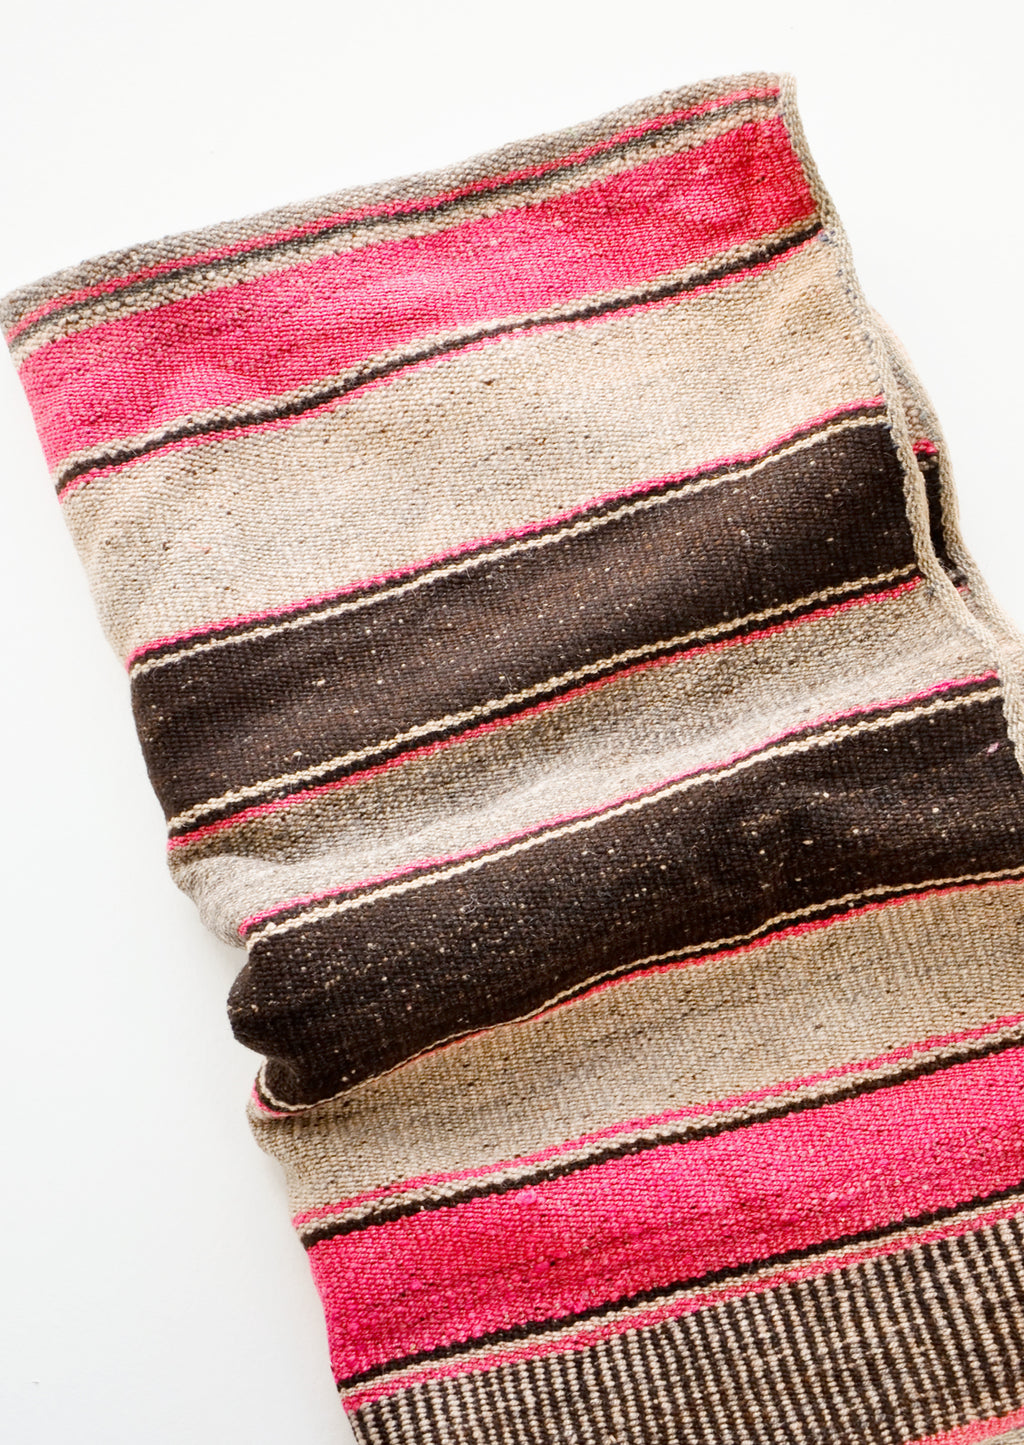 2: Vintage wool textile in pink, tan & brown striped pattern